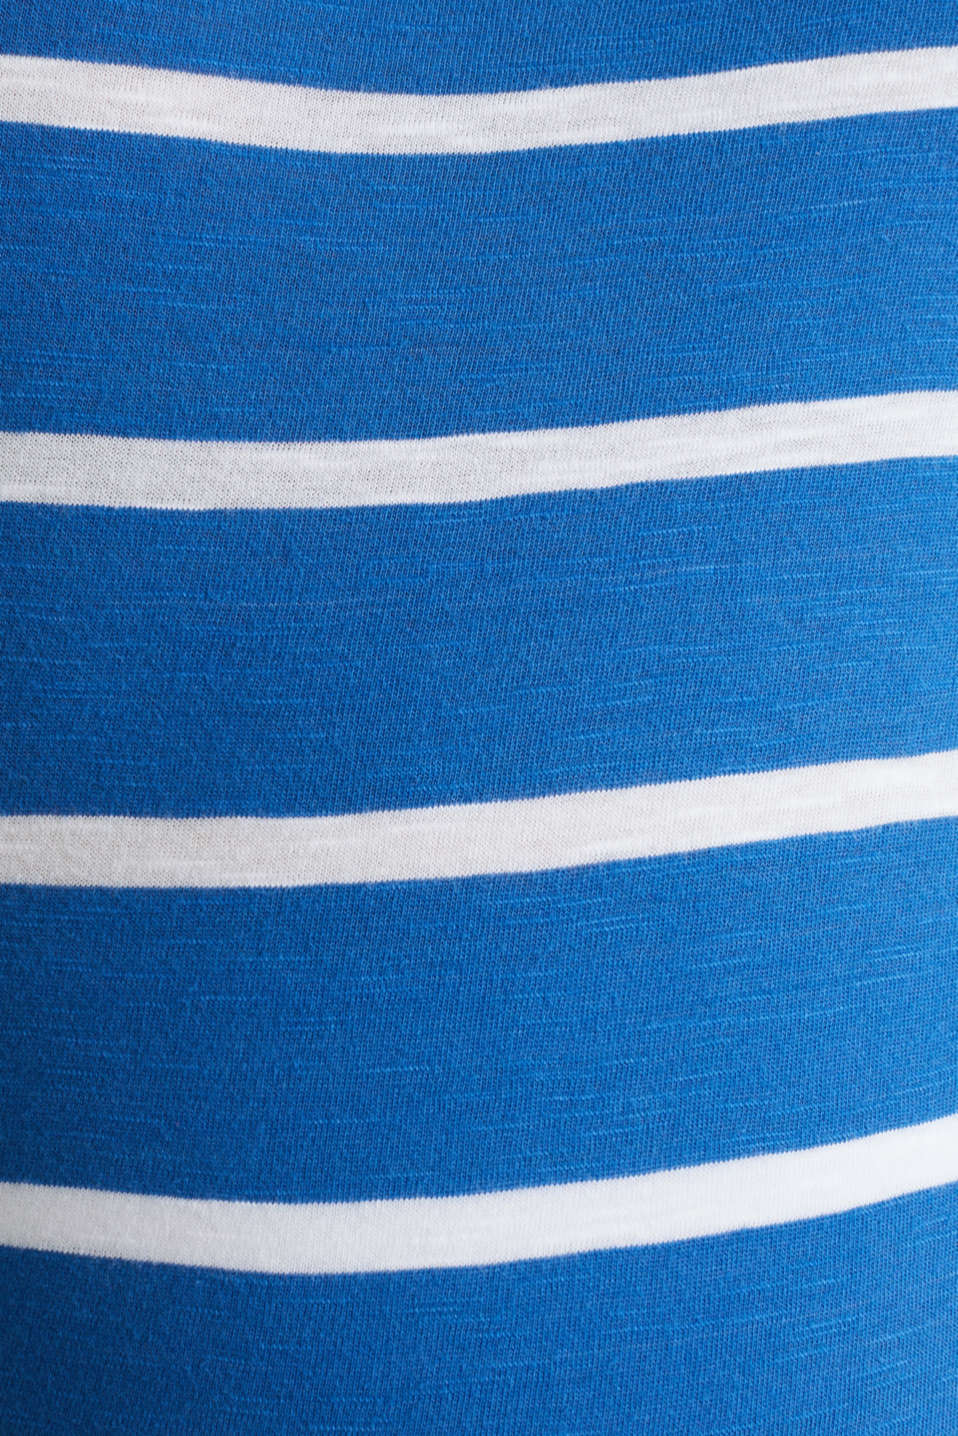 T-shirt with stripes, 100% cotton, LCGREY BLUE, detail image number 4